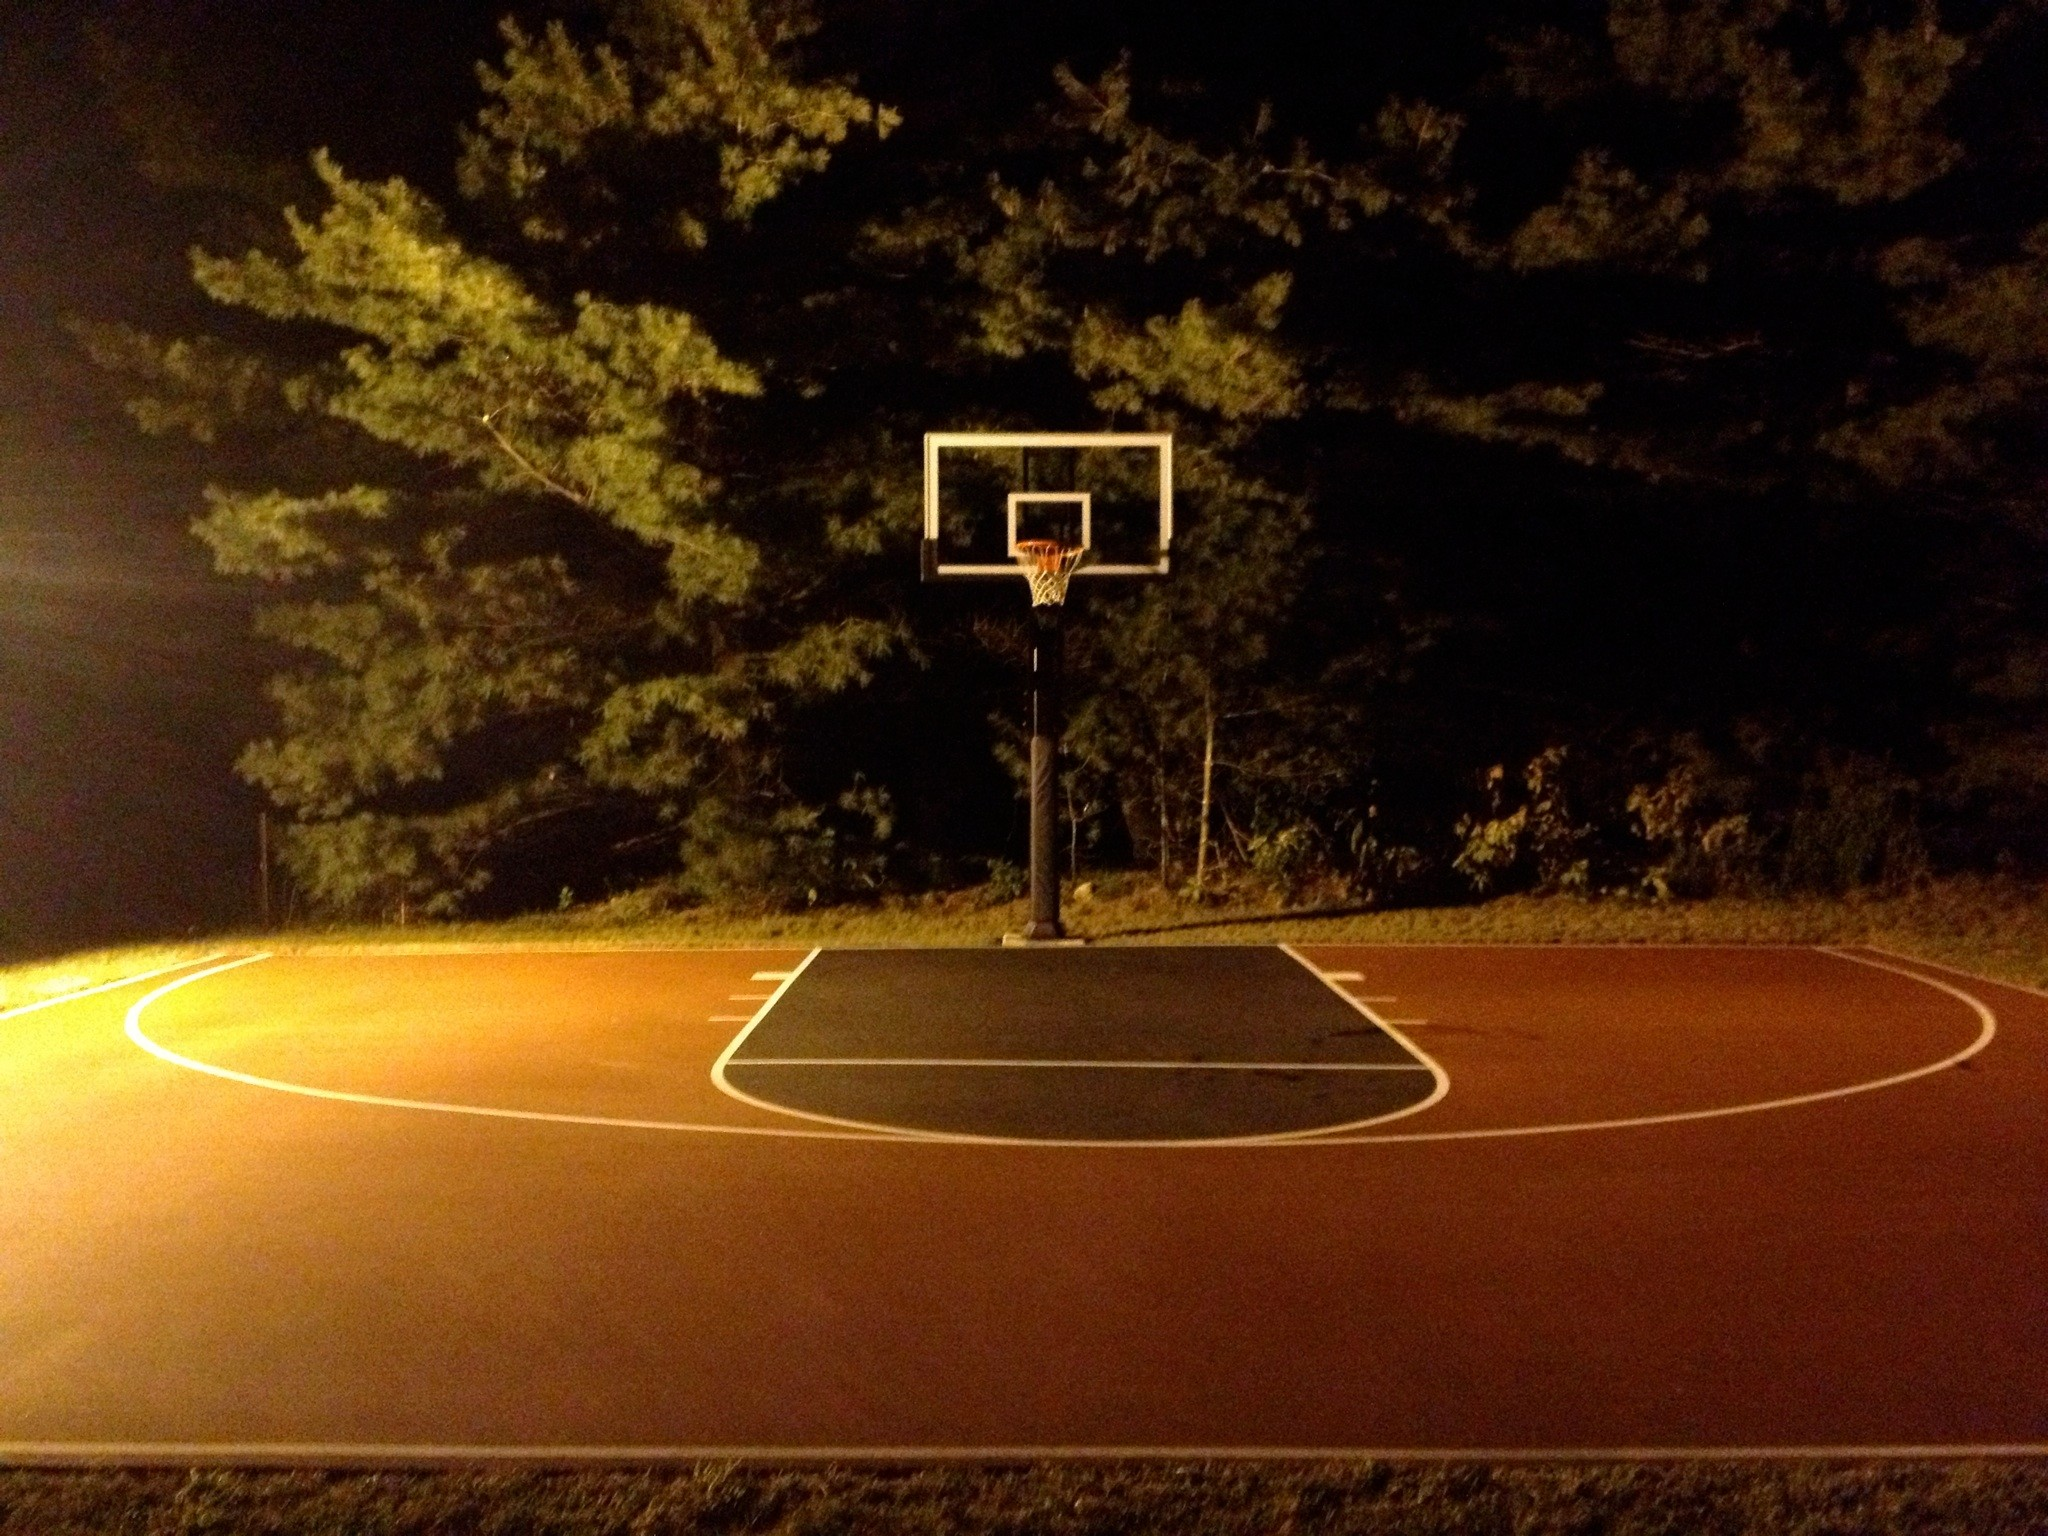 Outdoor basketball court texture